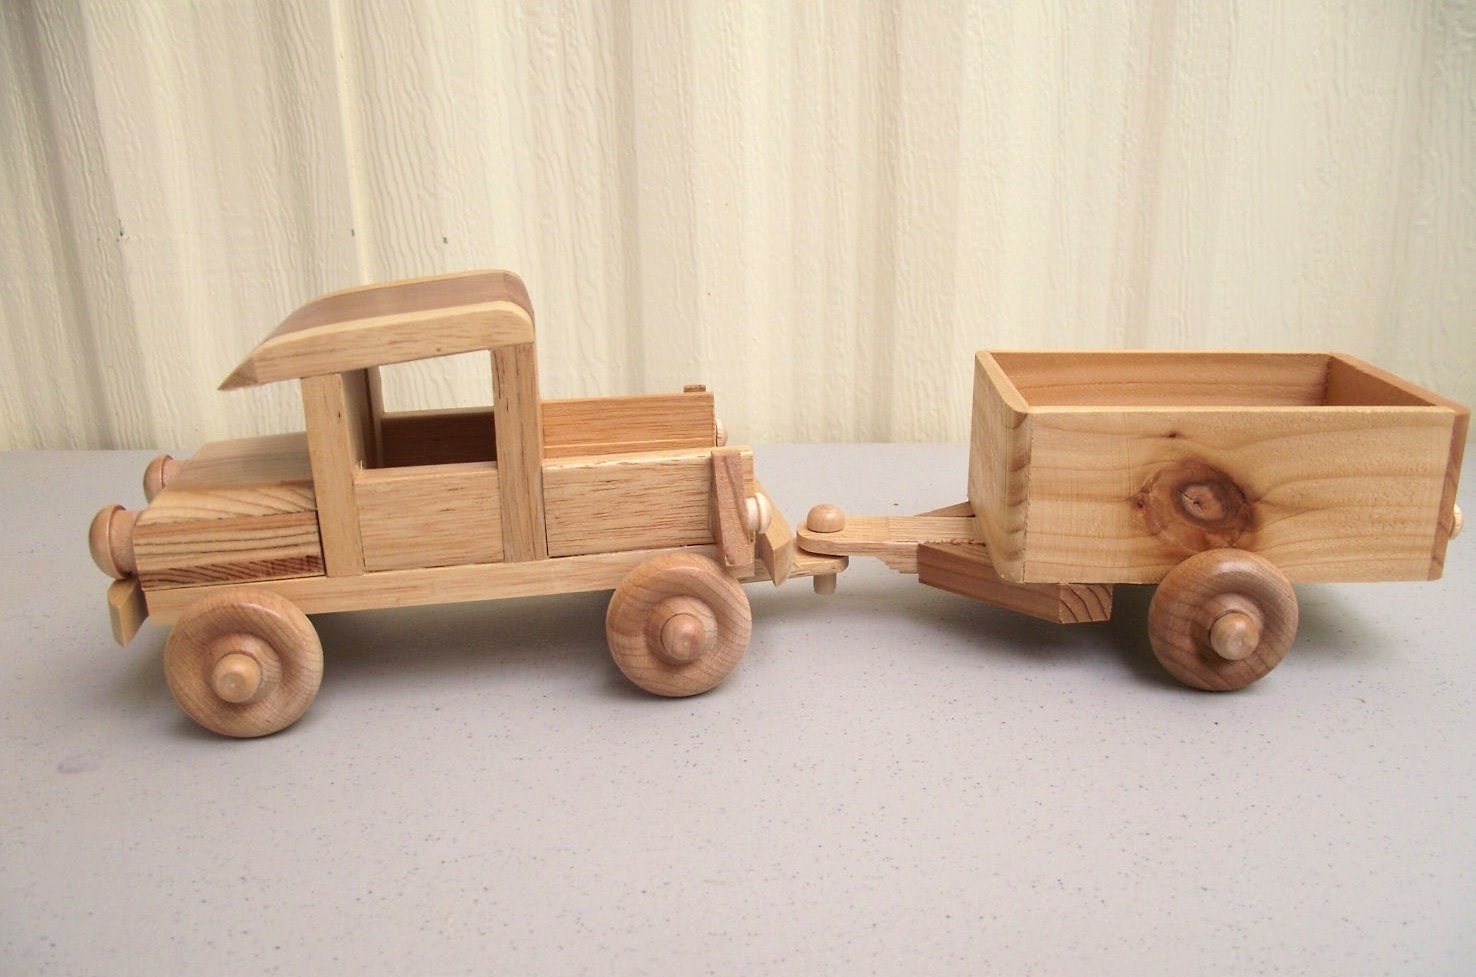 Eco Friendy Wooden Toy Truck with Trailer for Children